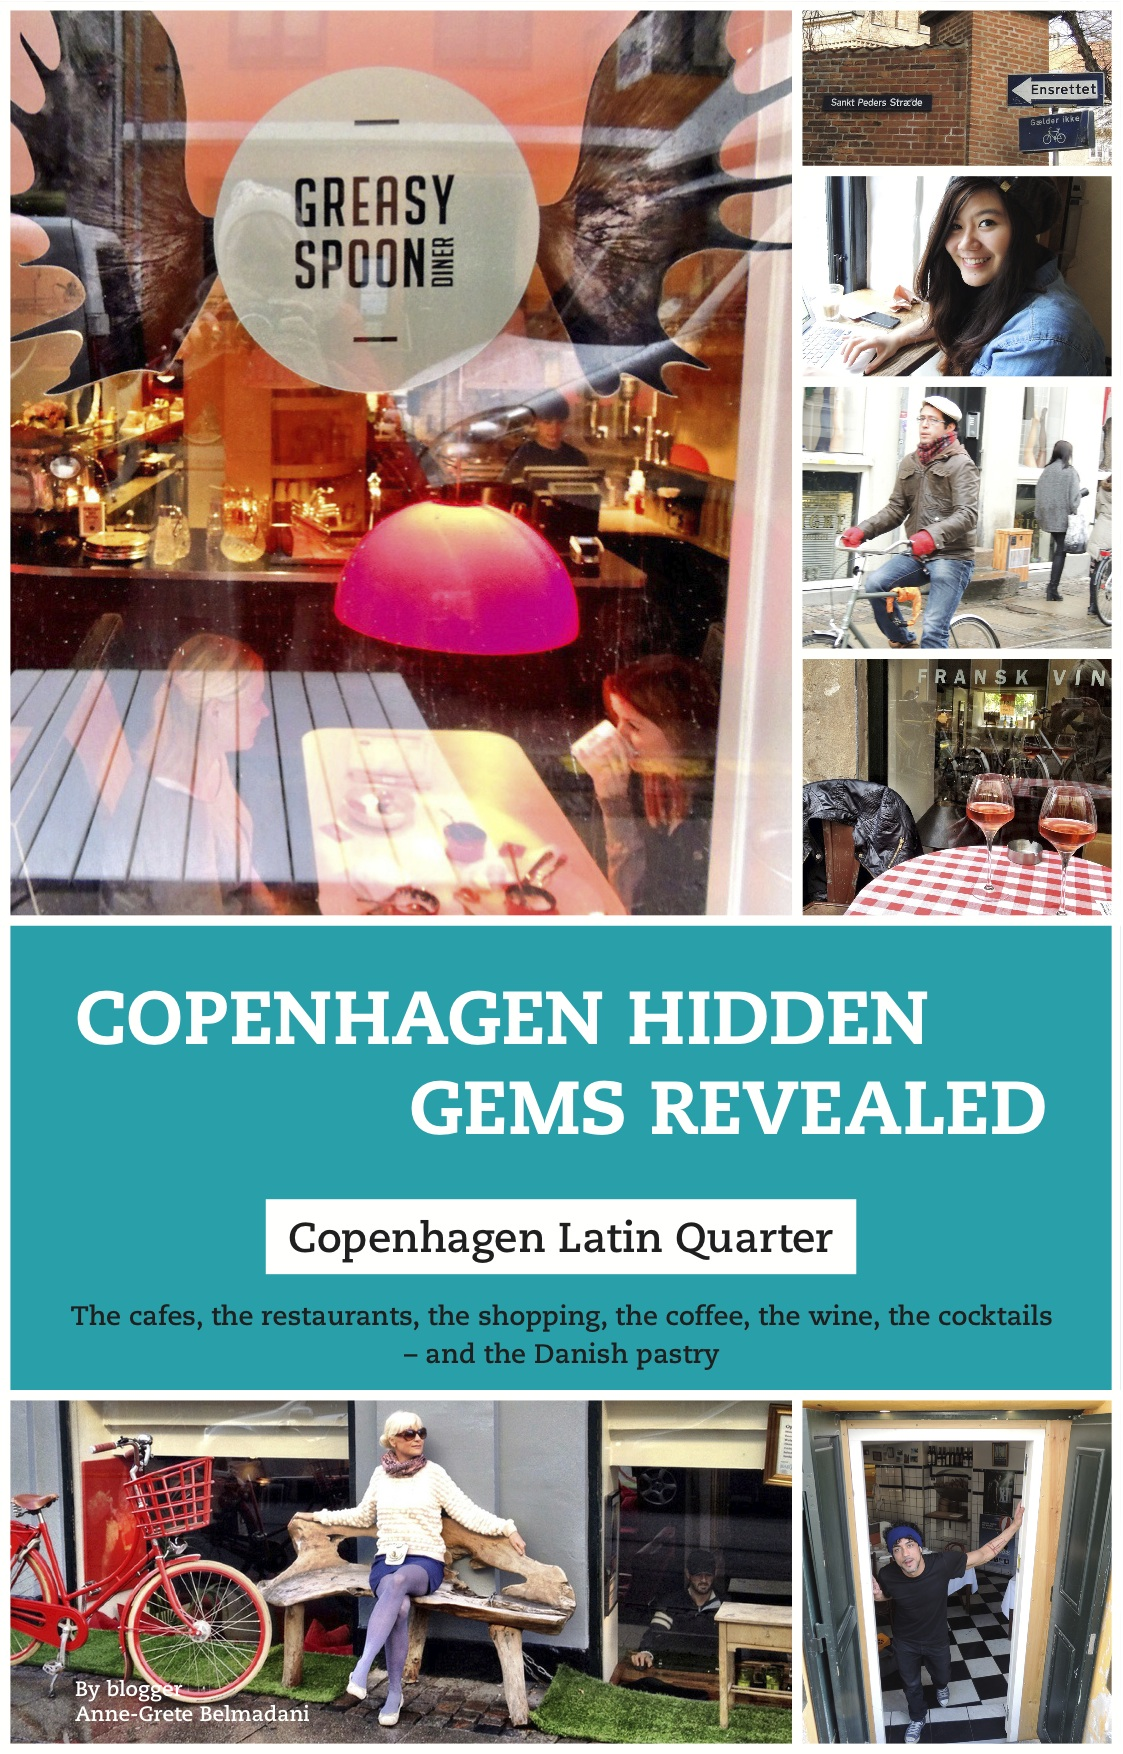 Potential cover 1 for my new ebook #CopenhagenHiddenGems